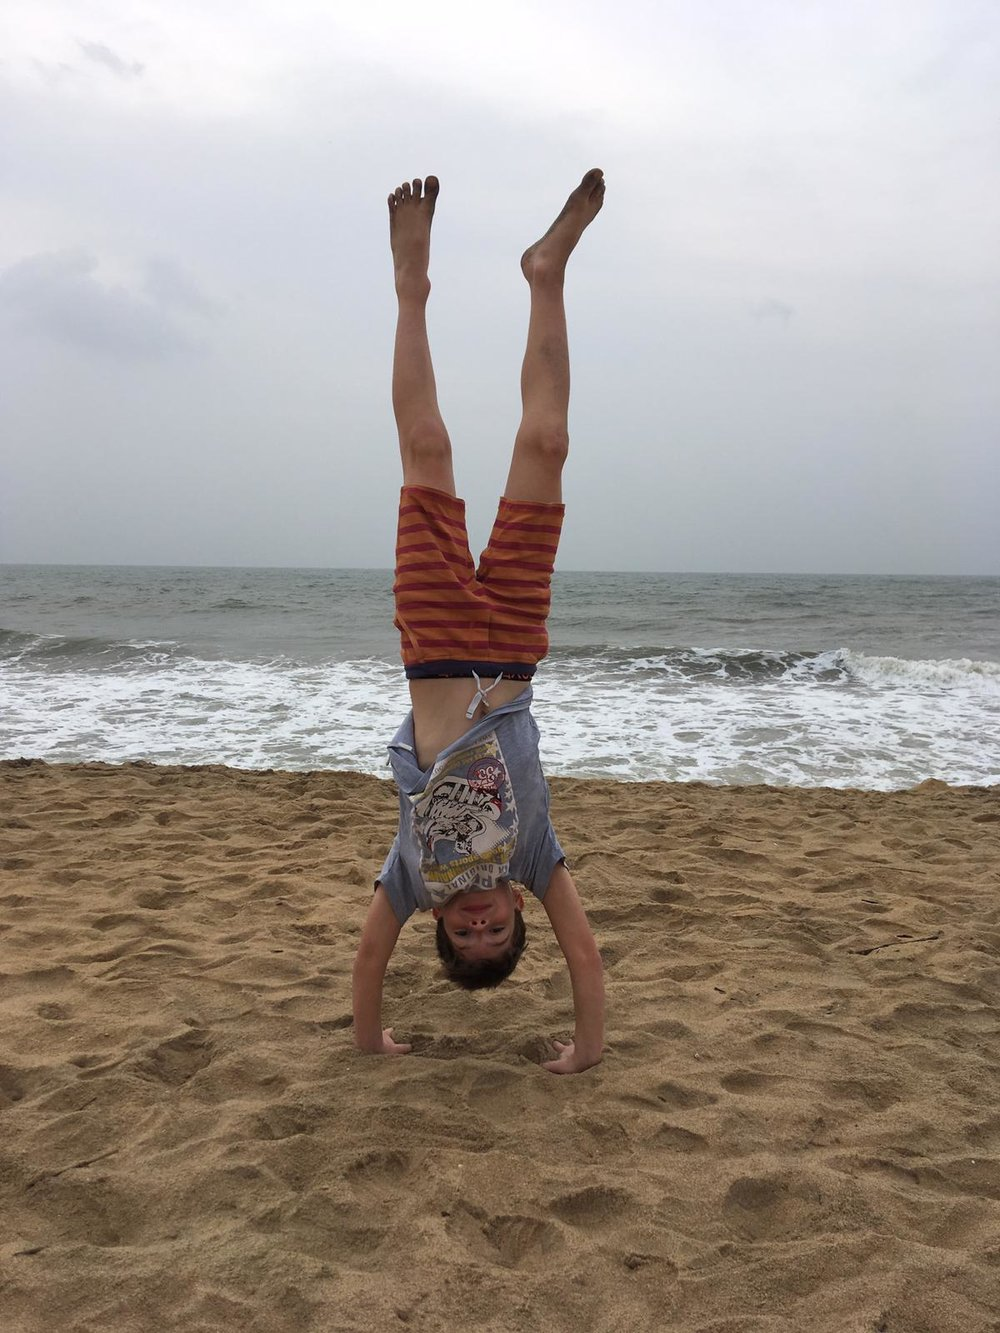 invite-to-paradise-sri-lanka-family-holiday-specialists-customer-feedback-pickering-beach-handstand.jpg